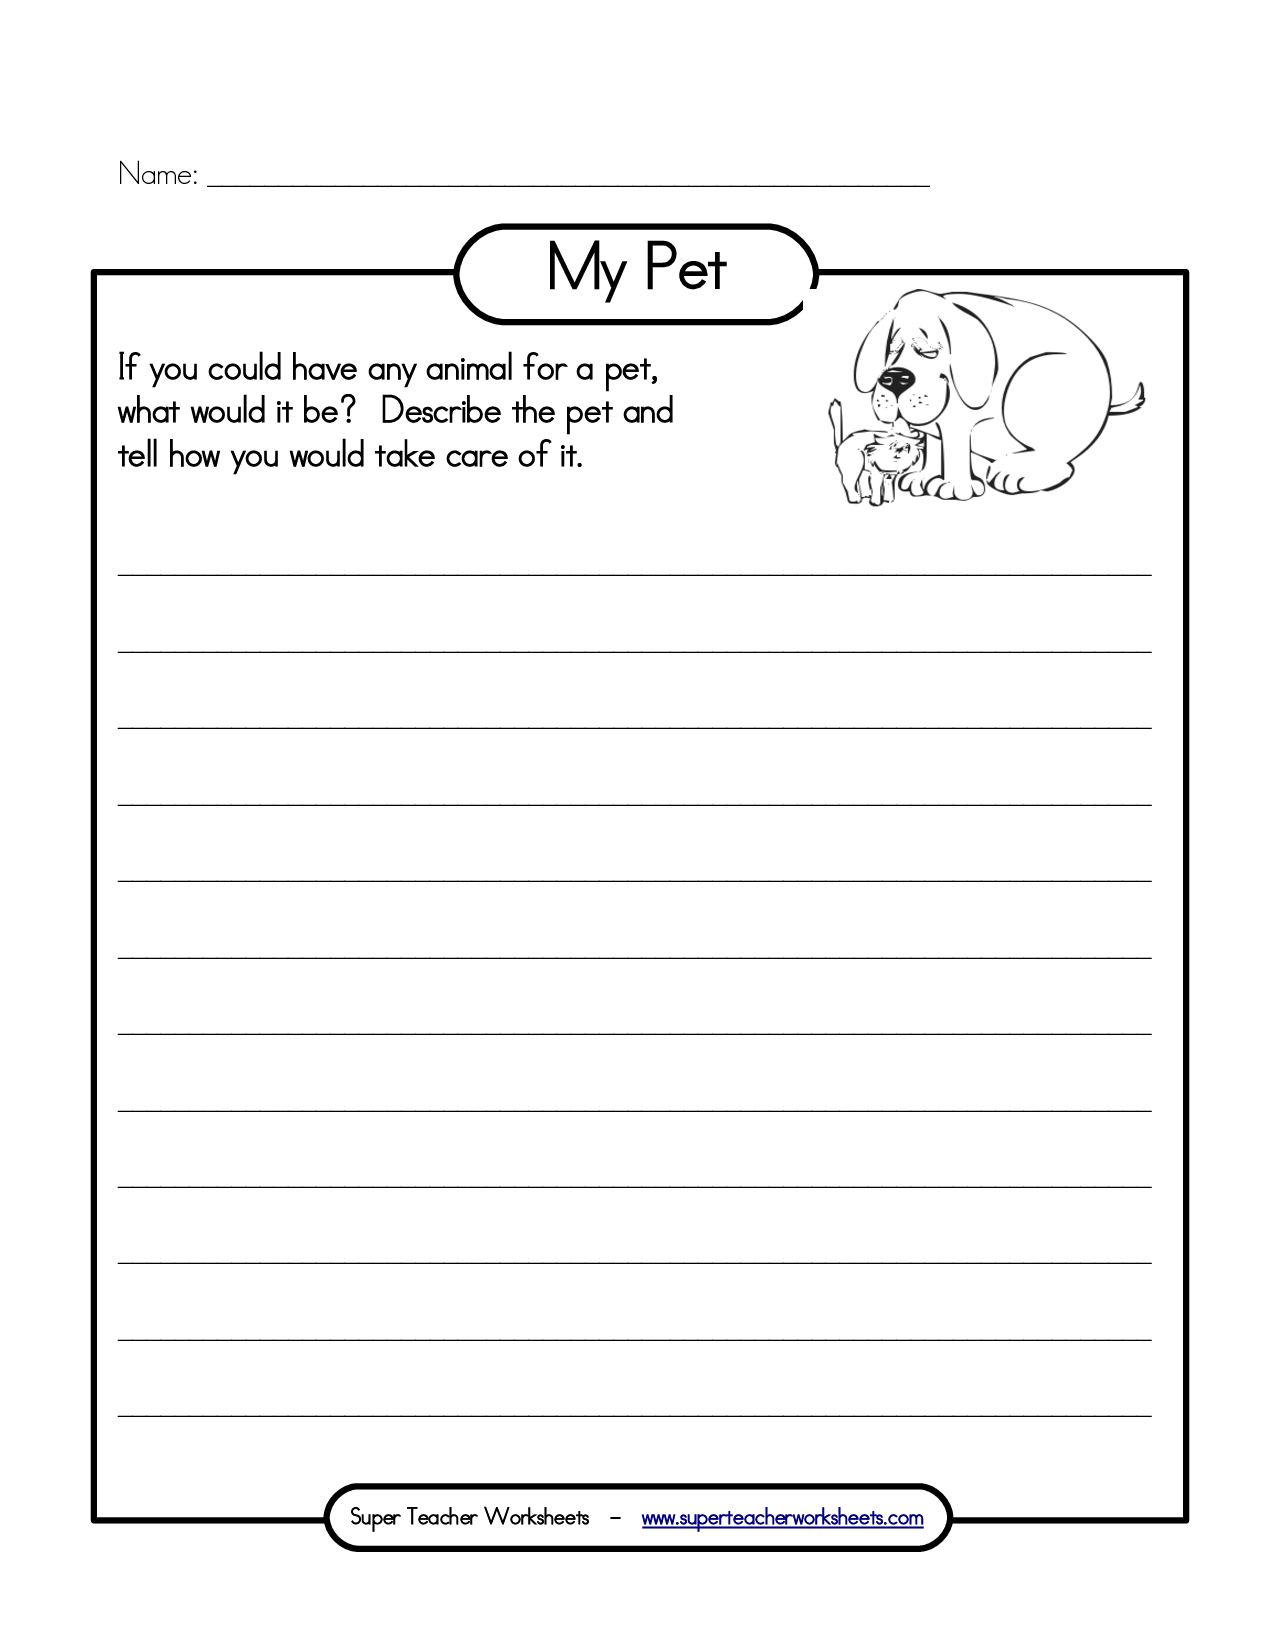 Worksheet For Casual Teachers